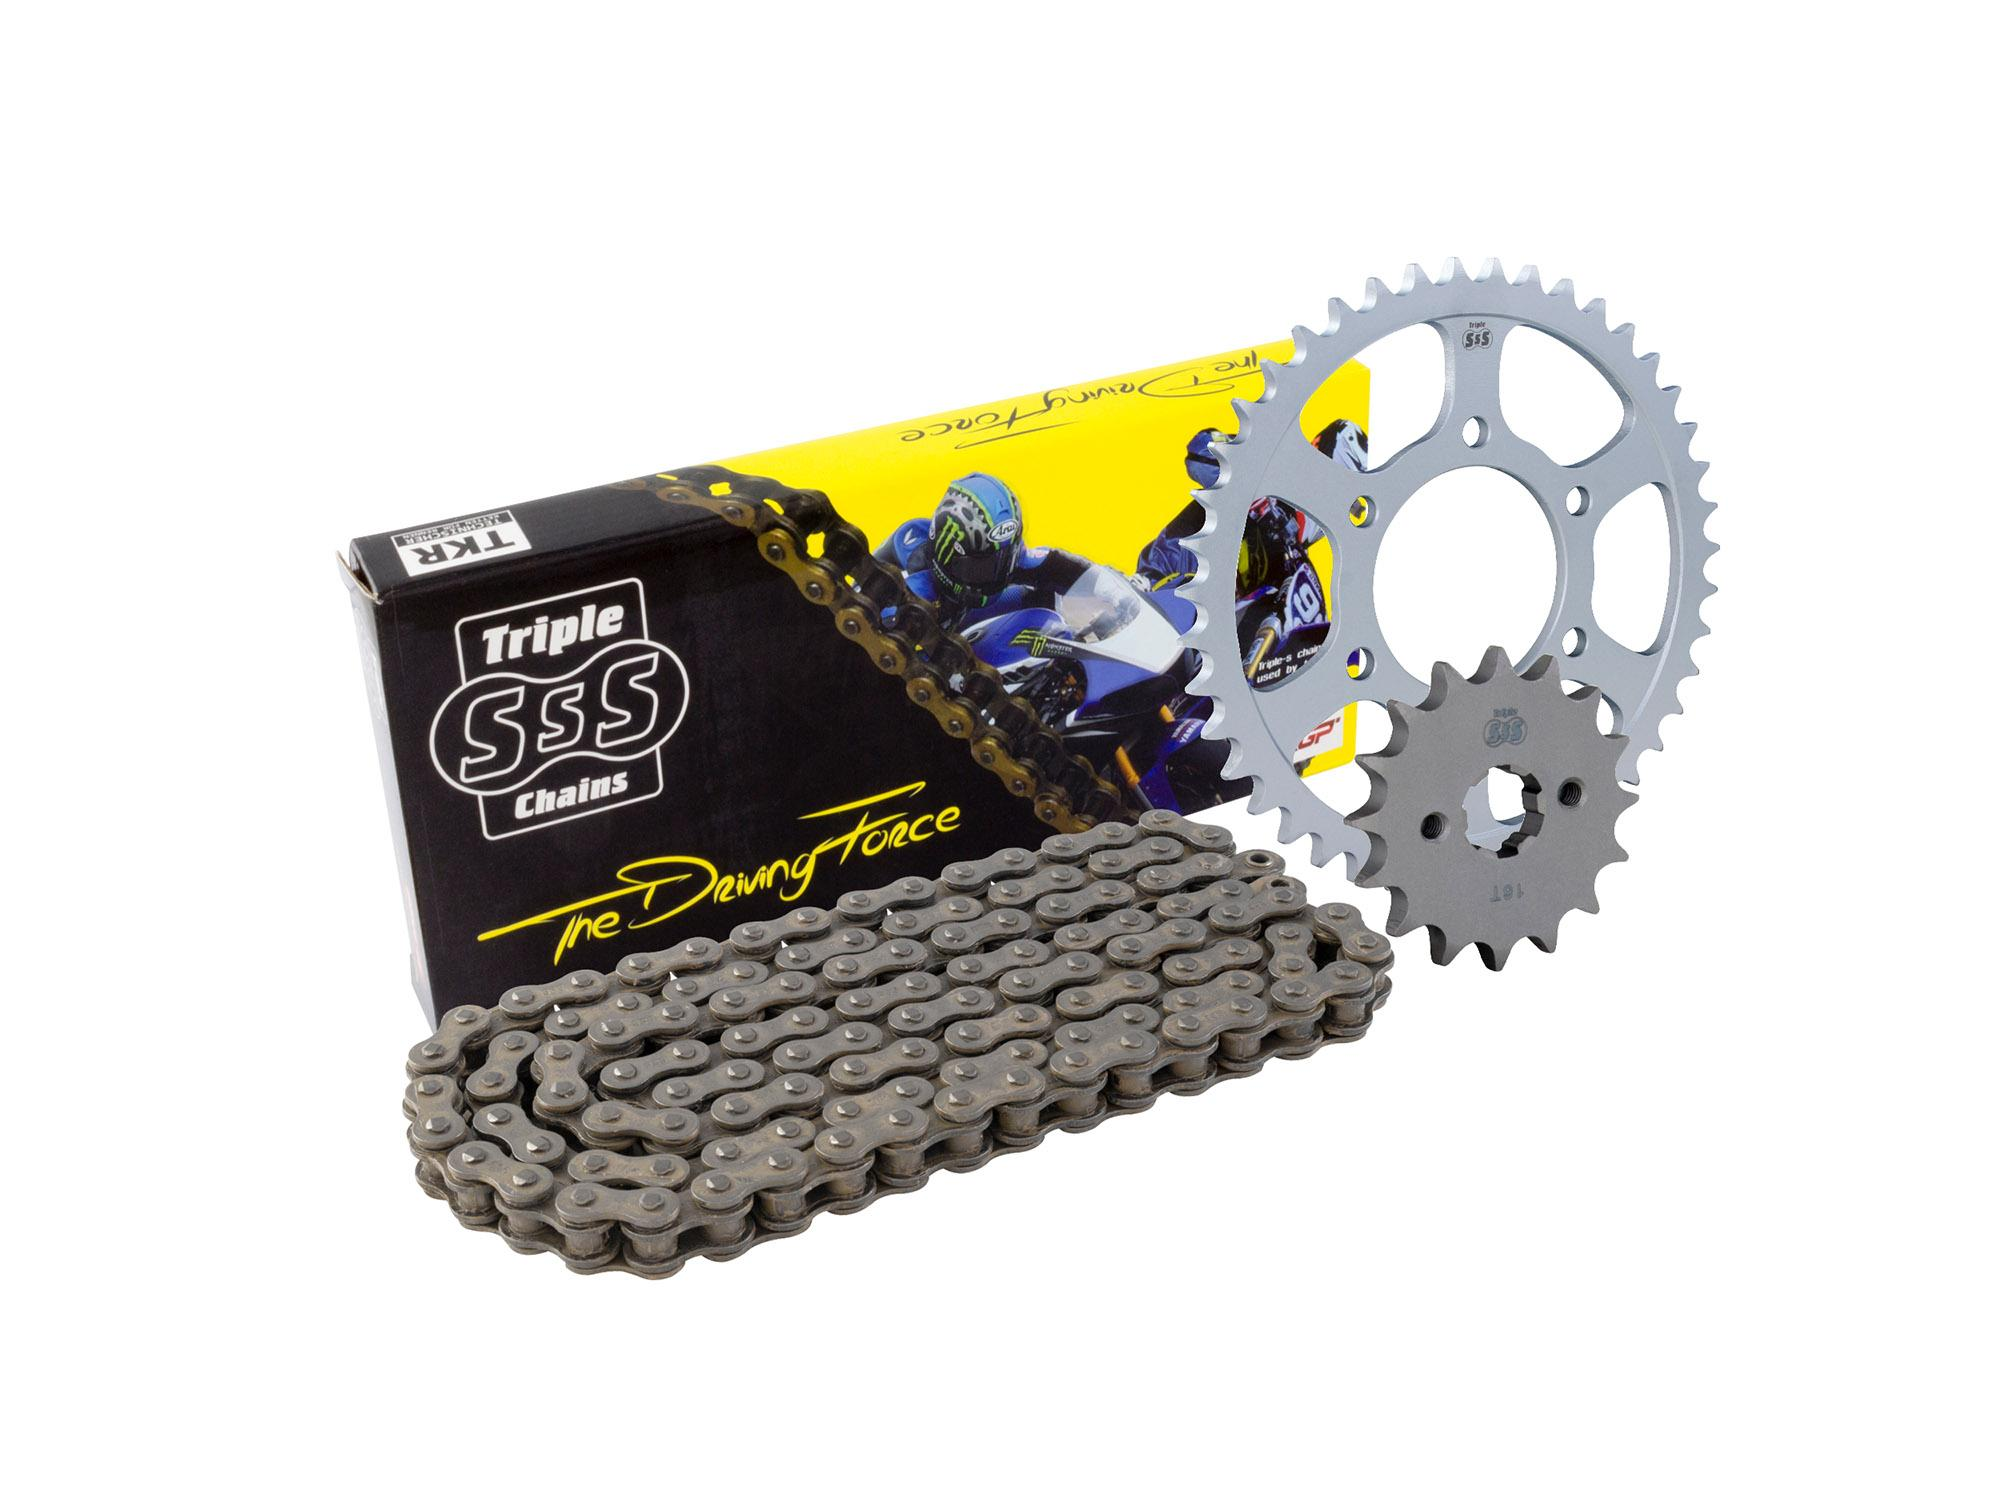 Kawasaki KLR650 A4-A19/A6F-A7F 90-09 Chain & Sprocket Kit: 15T Front, 43T Rear, HD O-Ring Black Chain 520H 106Link